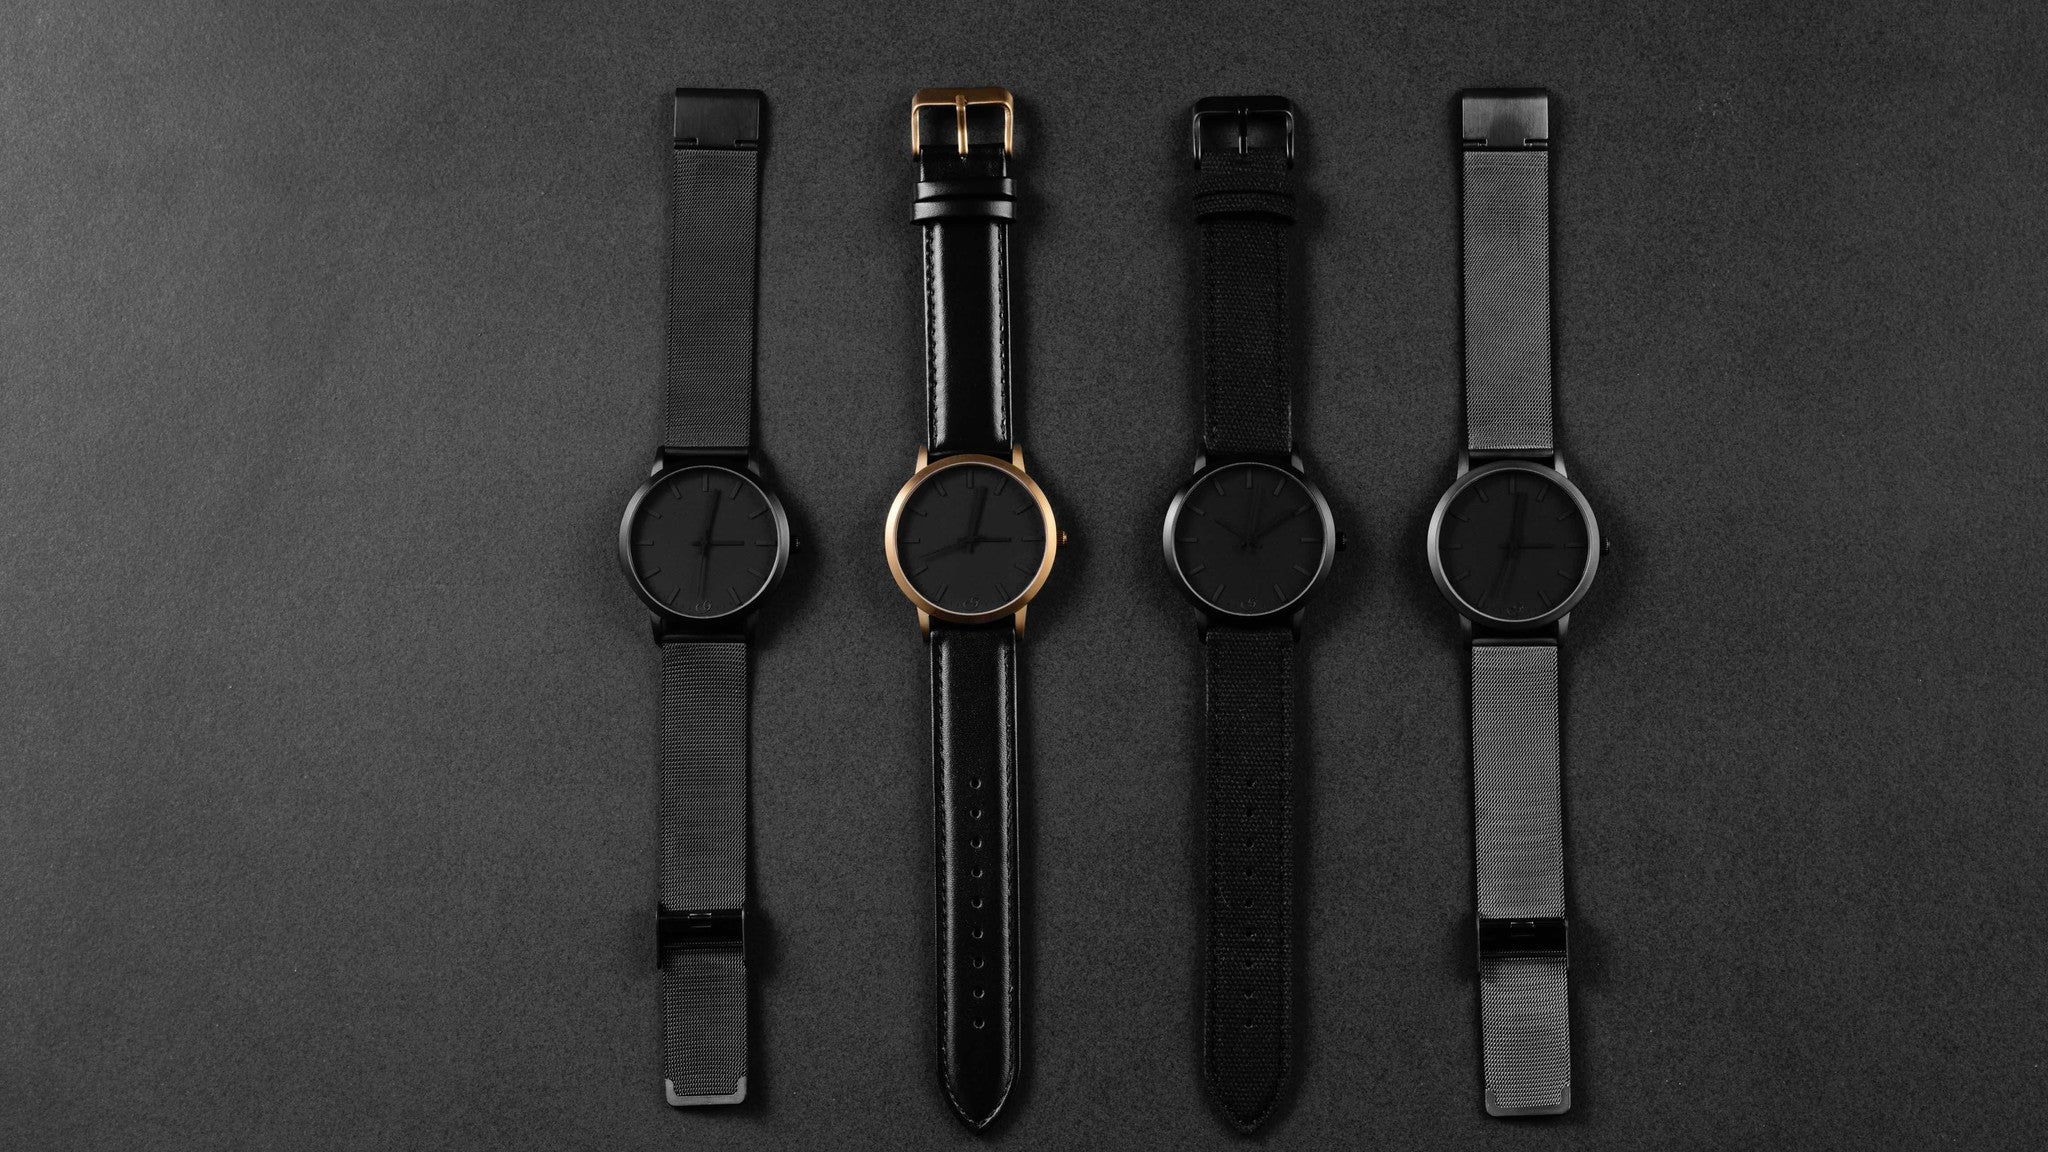 All black watch